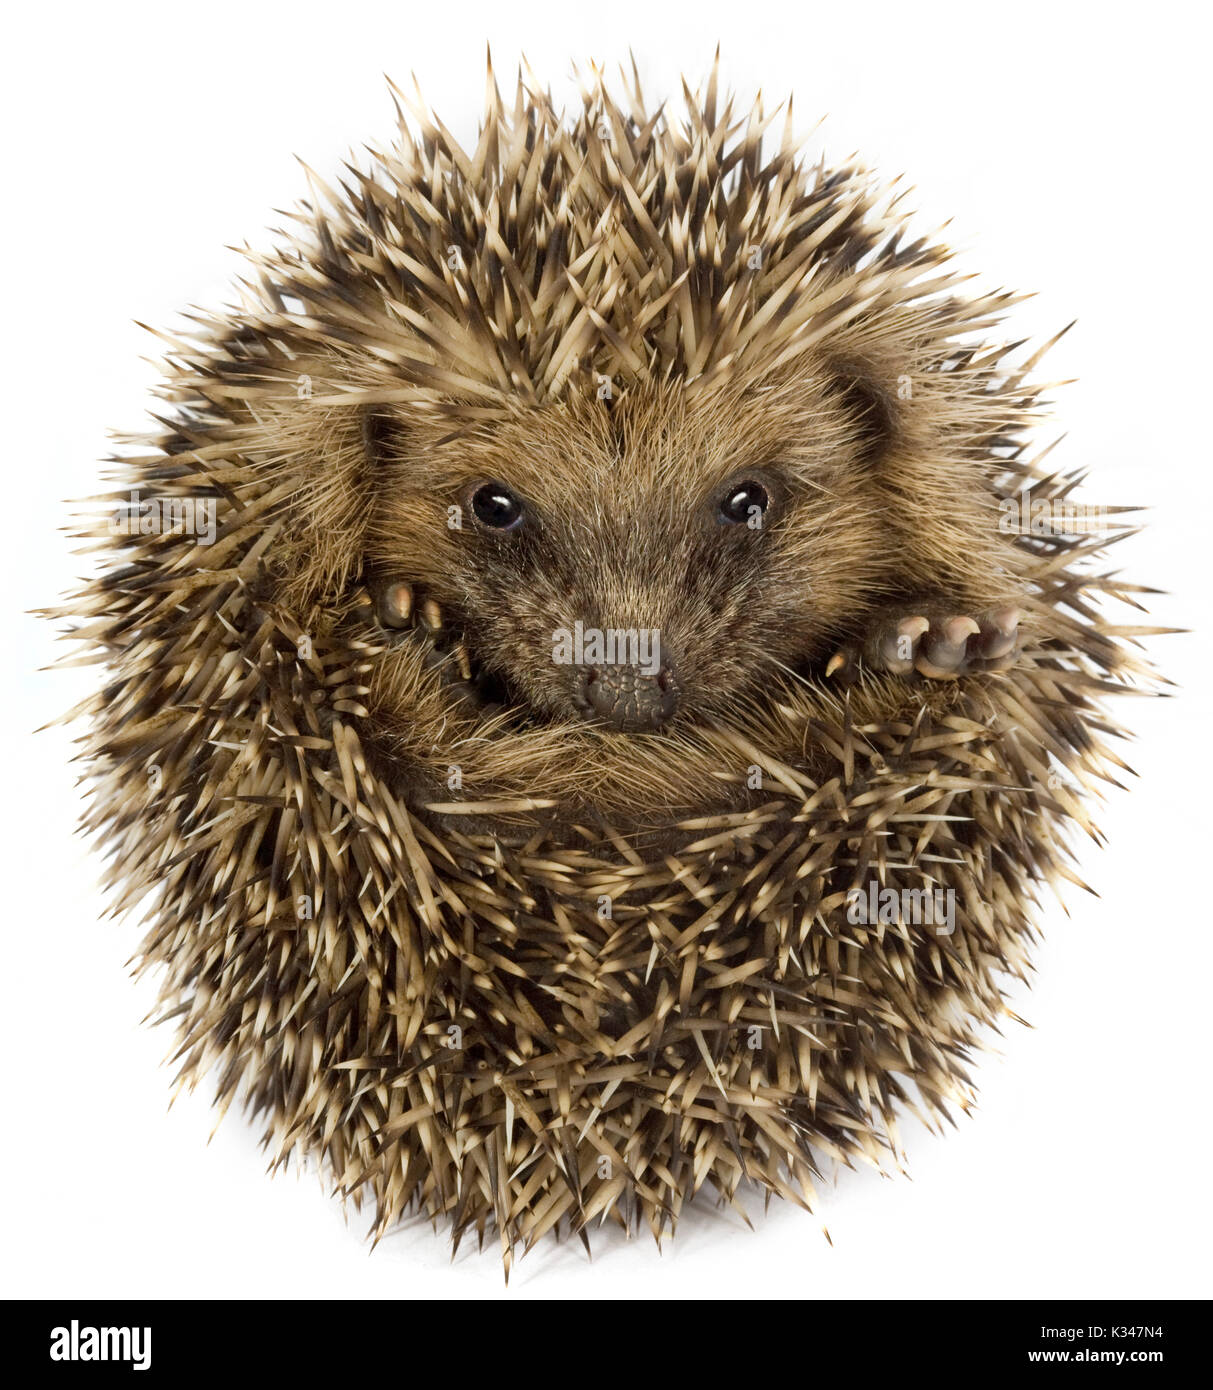 Small hedgehog (Erinaceus europaeus), curled up, on a white background Stock Photo